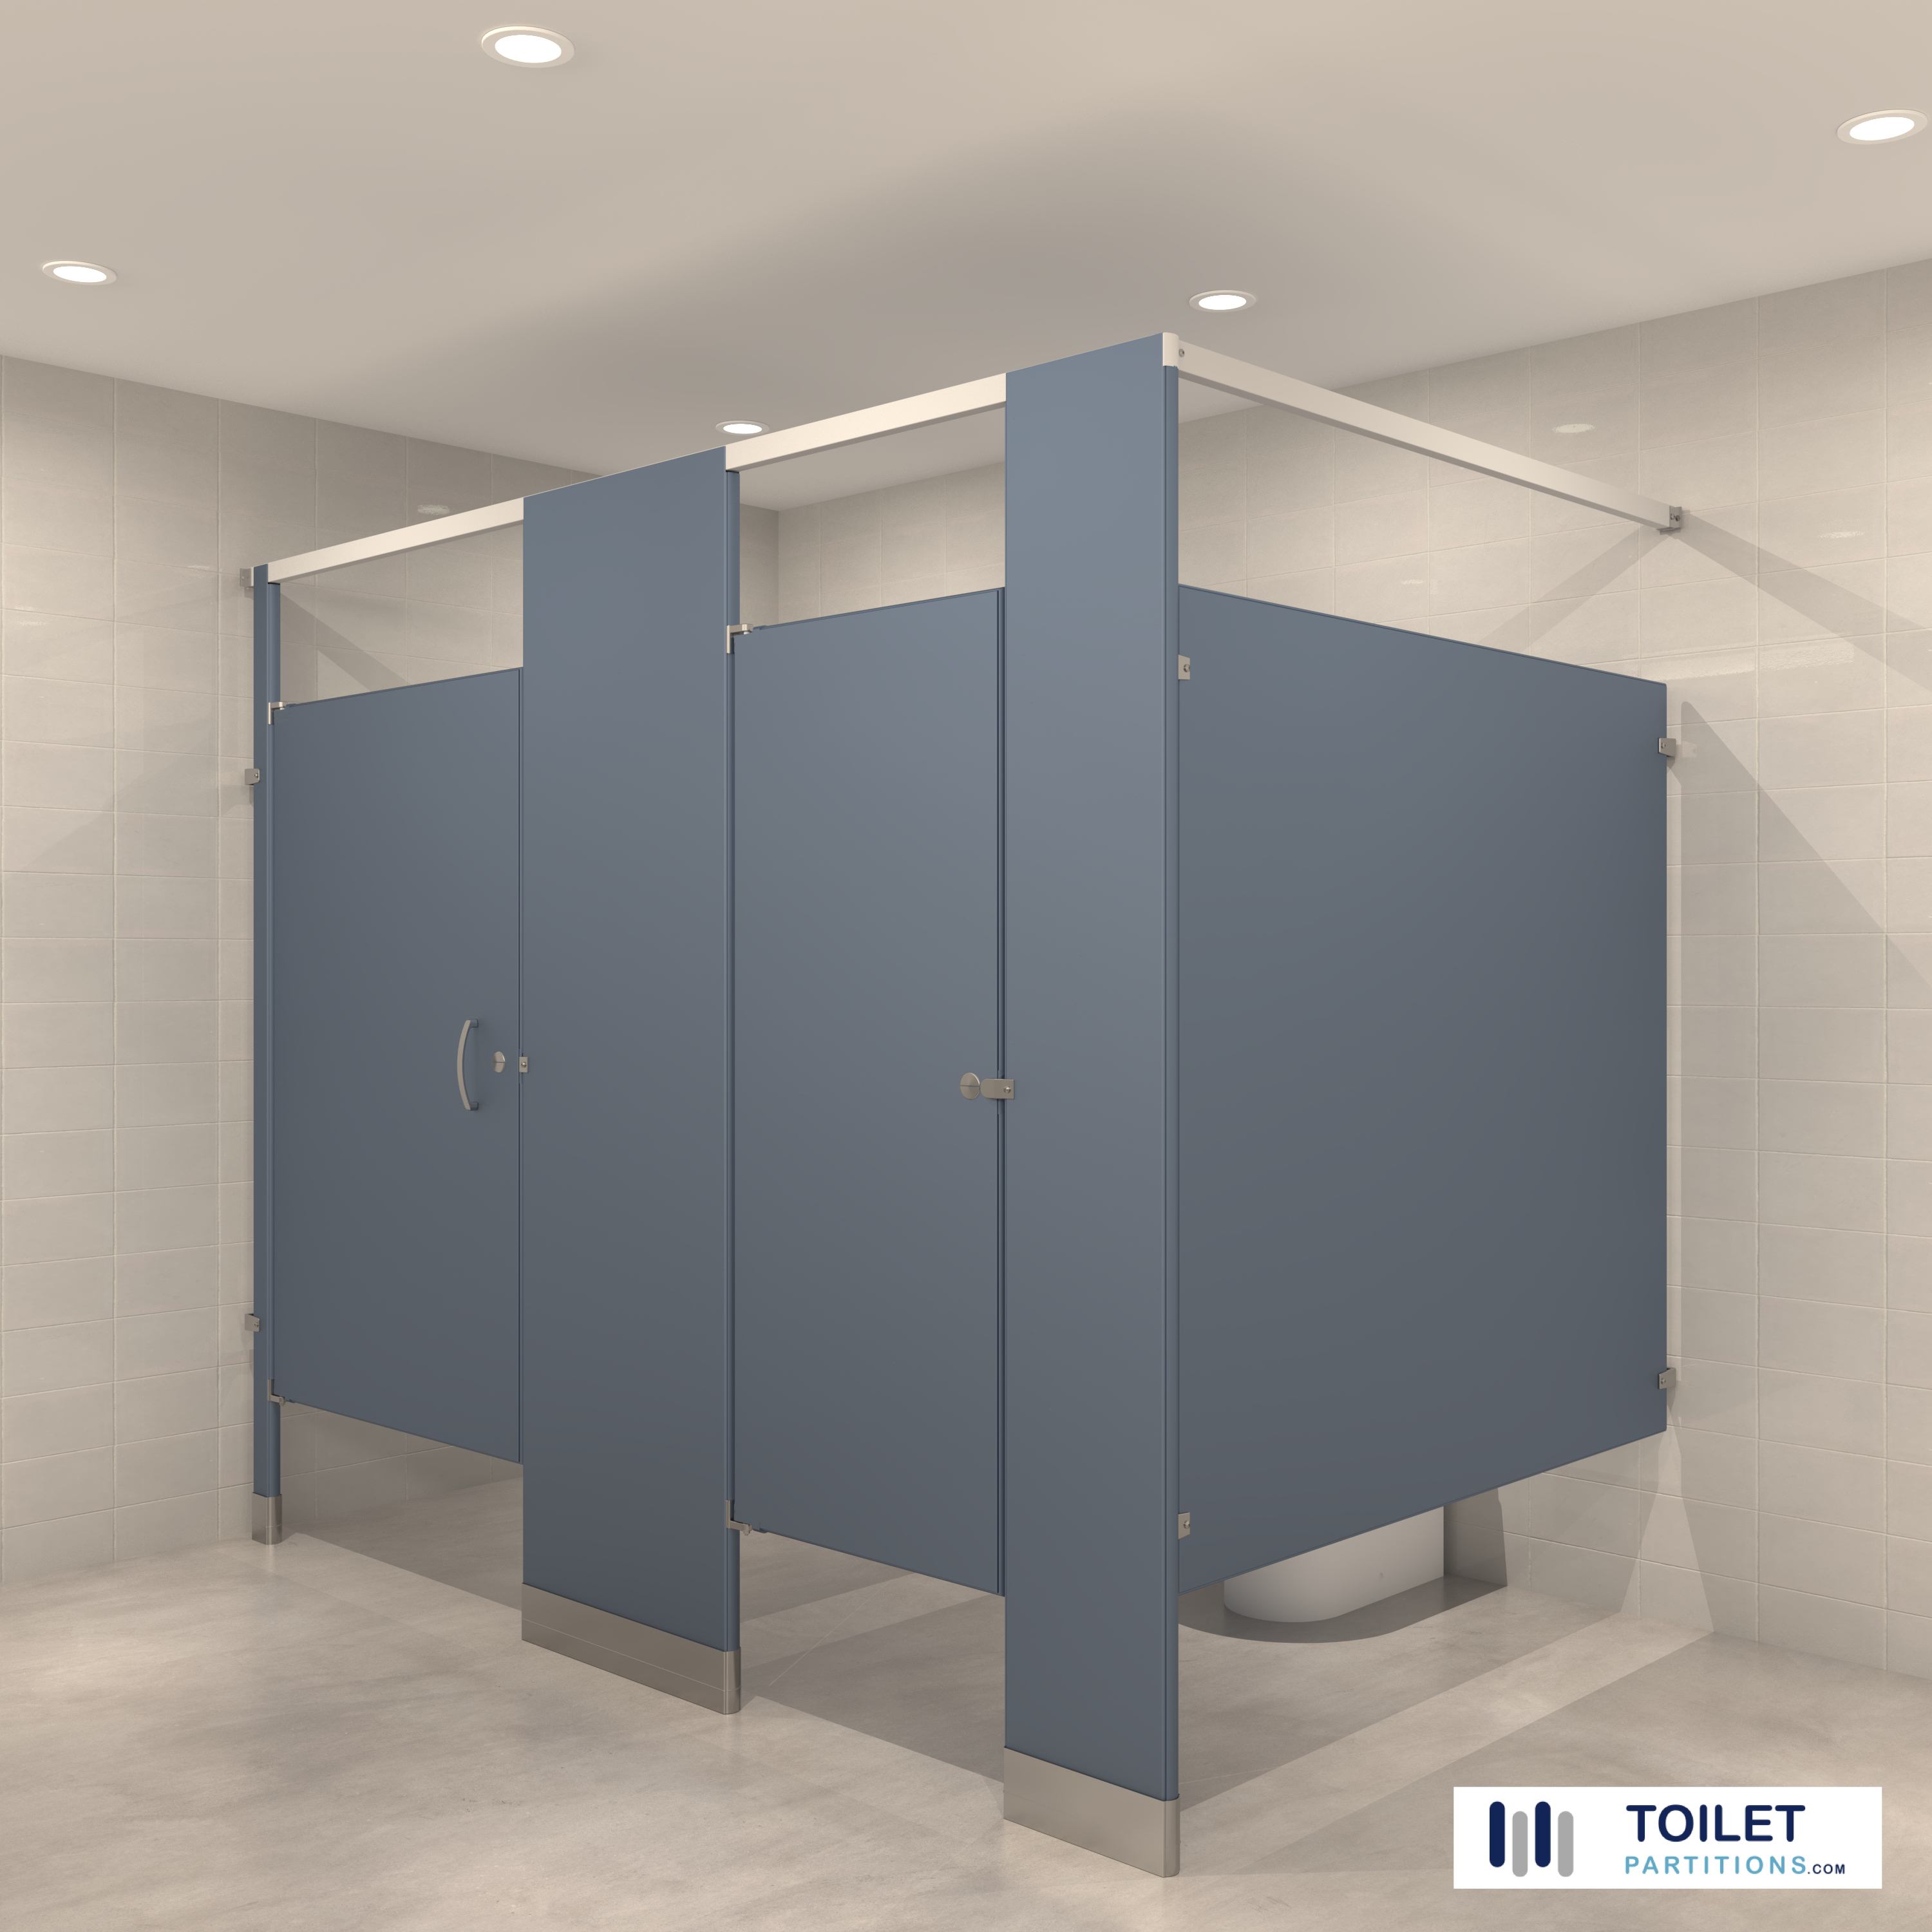 COLONIAL-BLUE-TOILET-PARTITIONS BY-TOILETPARTITIONS